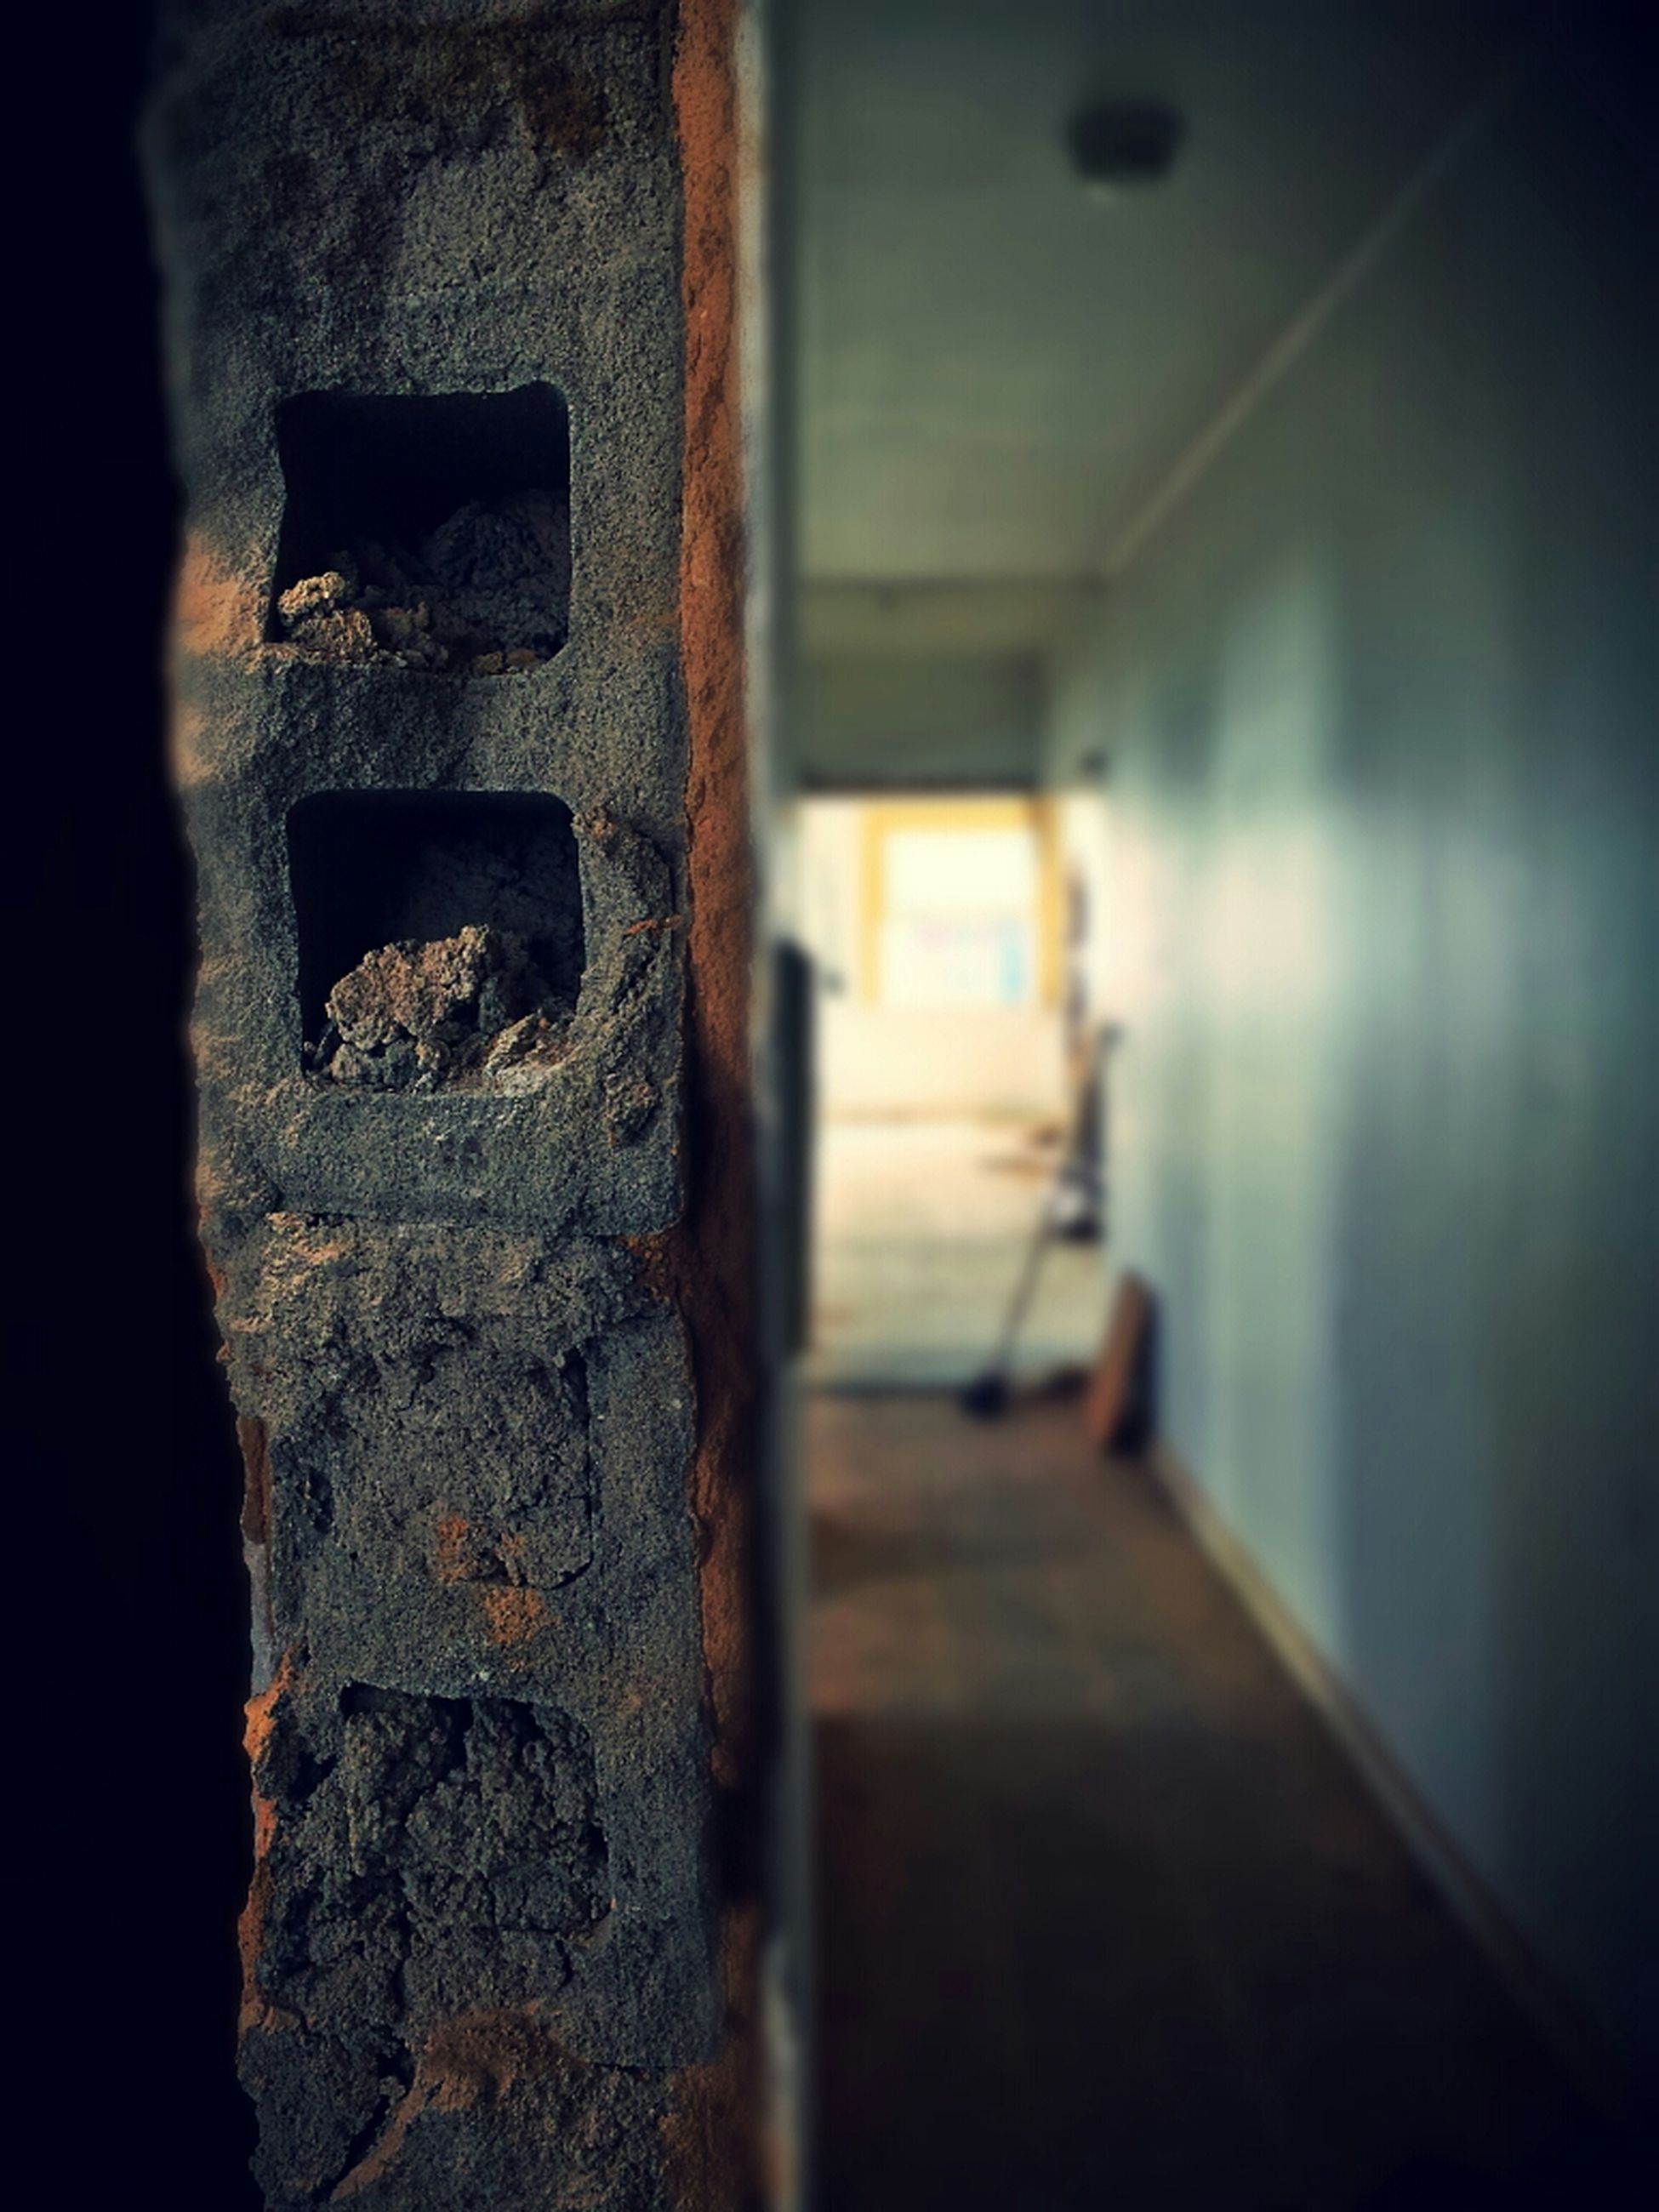 indoors, built structure, architecture, wall - building feature, old, abandoned, wall, door, corridor, building, steps, the way forward, sunlight, weathered, deterioration, damaged, staircase, no people, house, selective focus